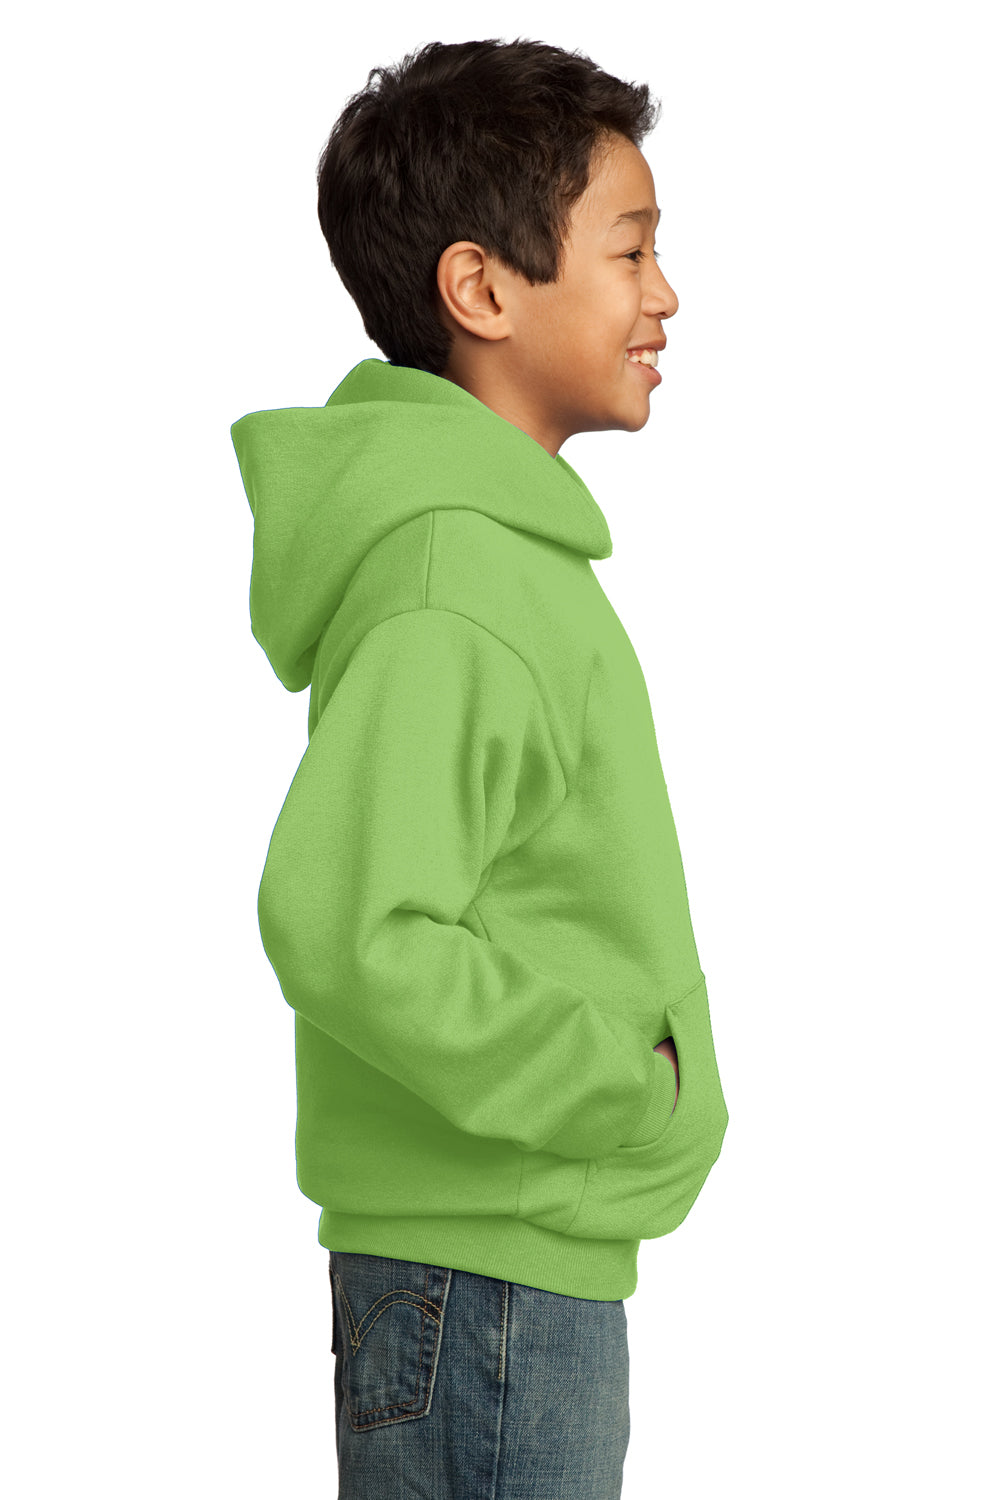 Port & Company PC90YH Youth Core Fleece Hooded Sweatshirt Hoodie Lime Green Side